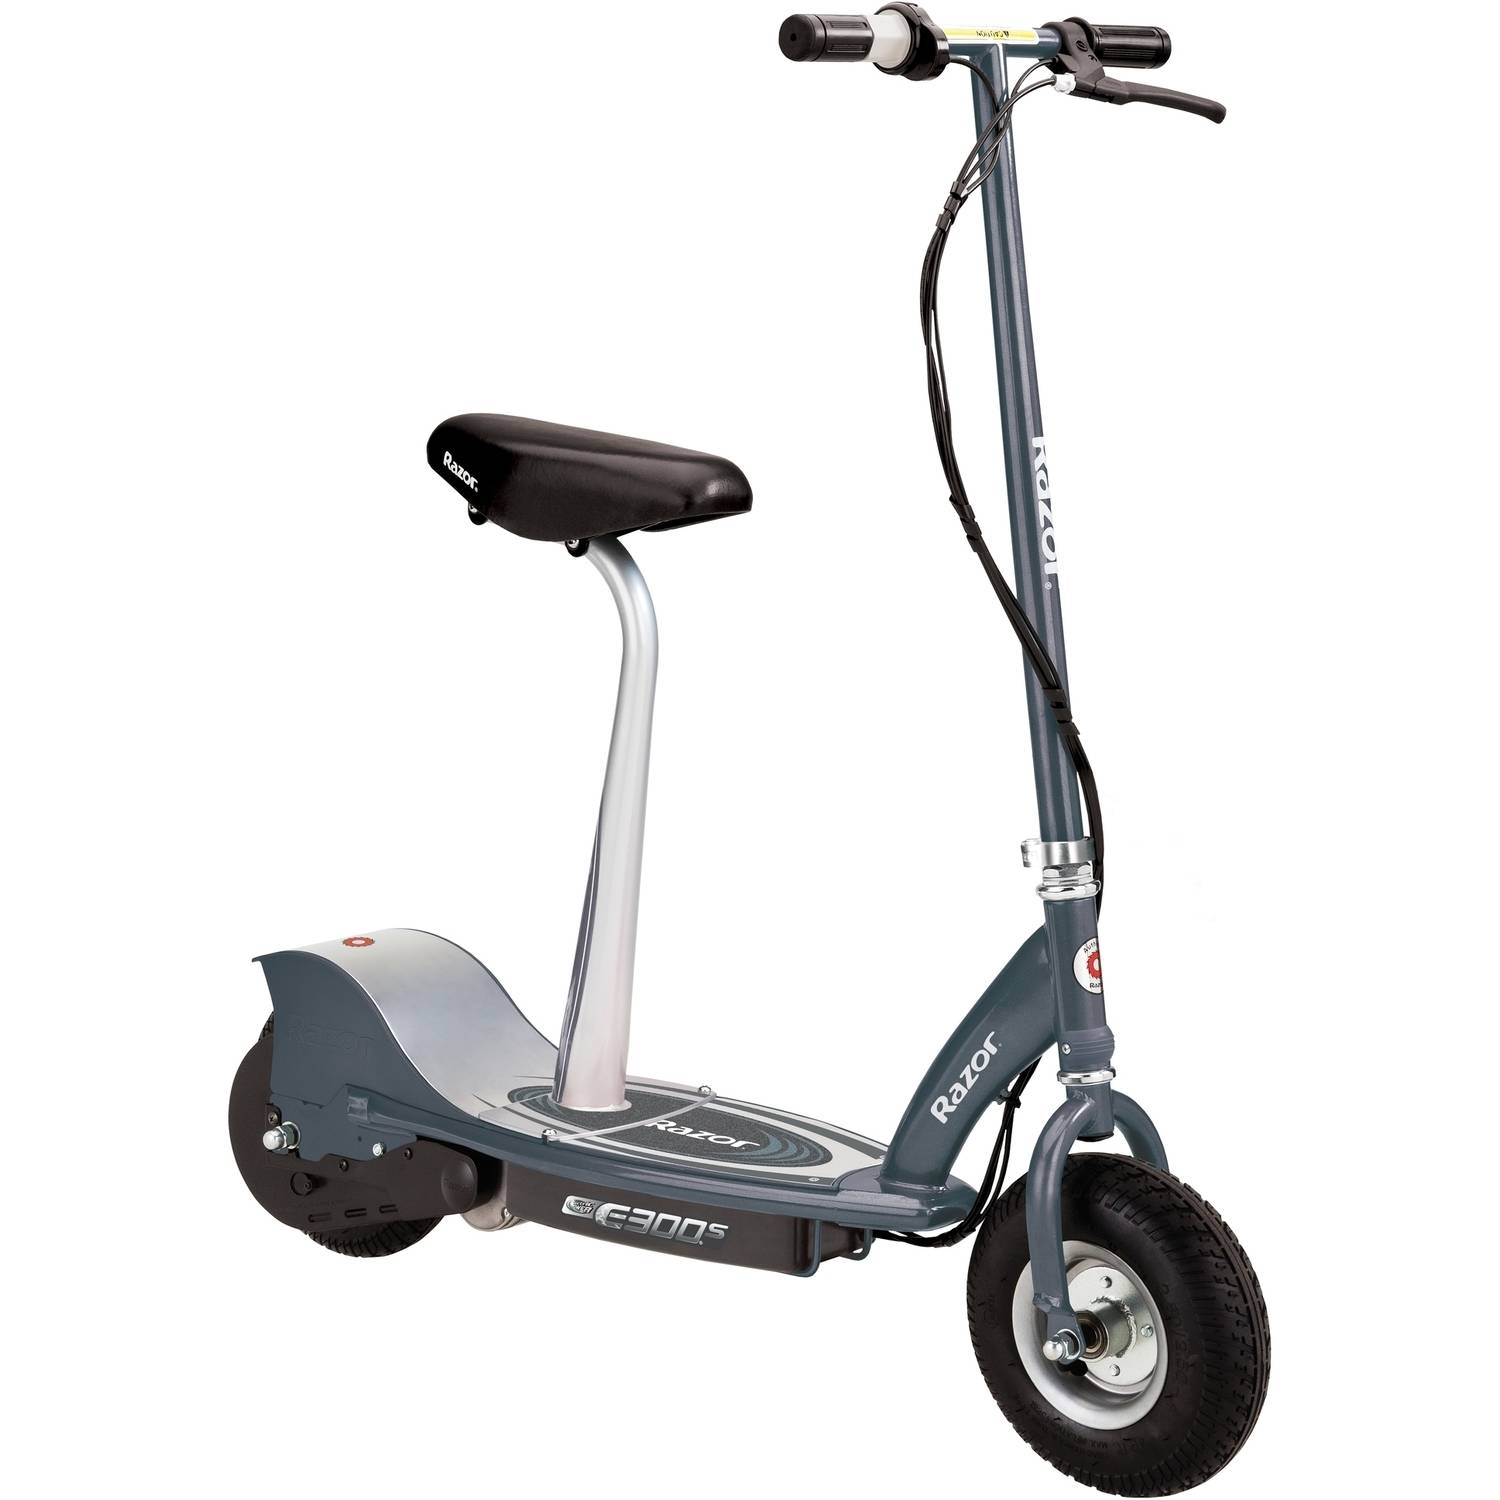 Best Electric Scooter For Kids Amp Toddlers Full Review